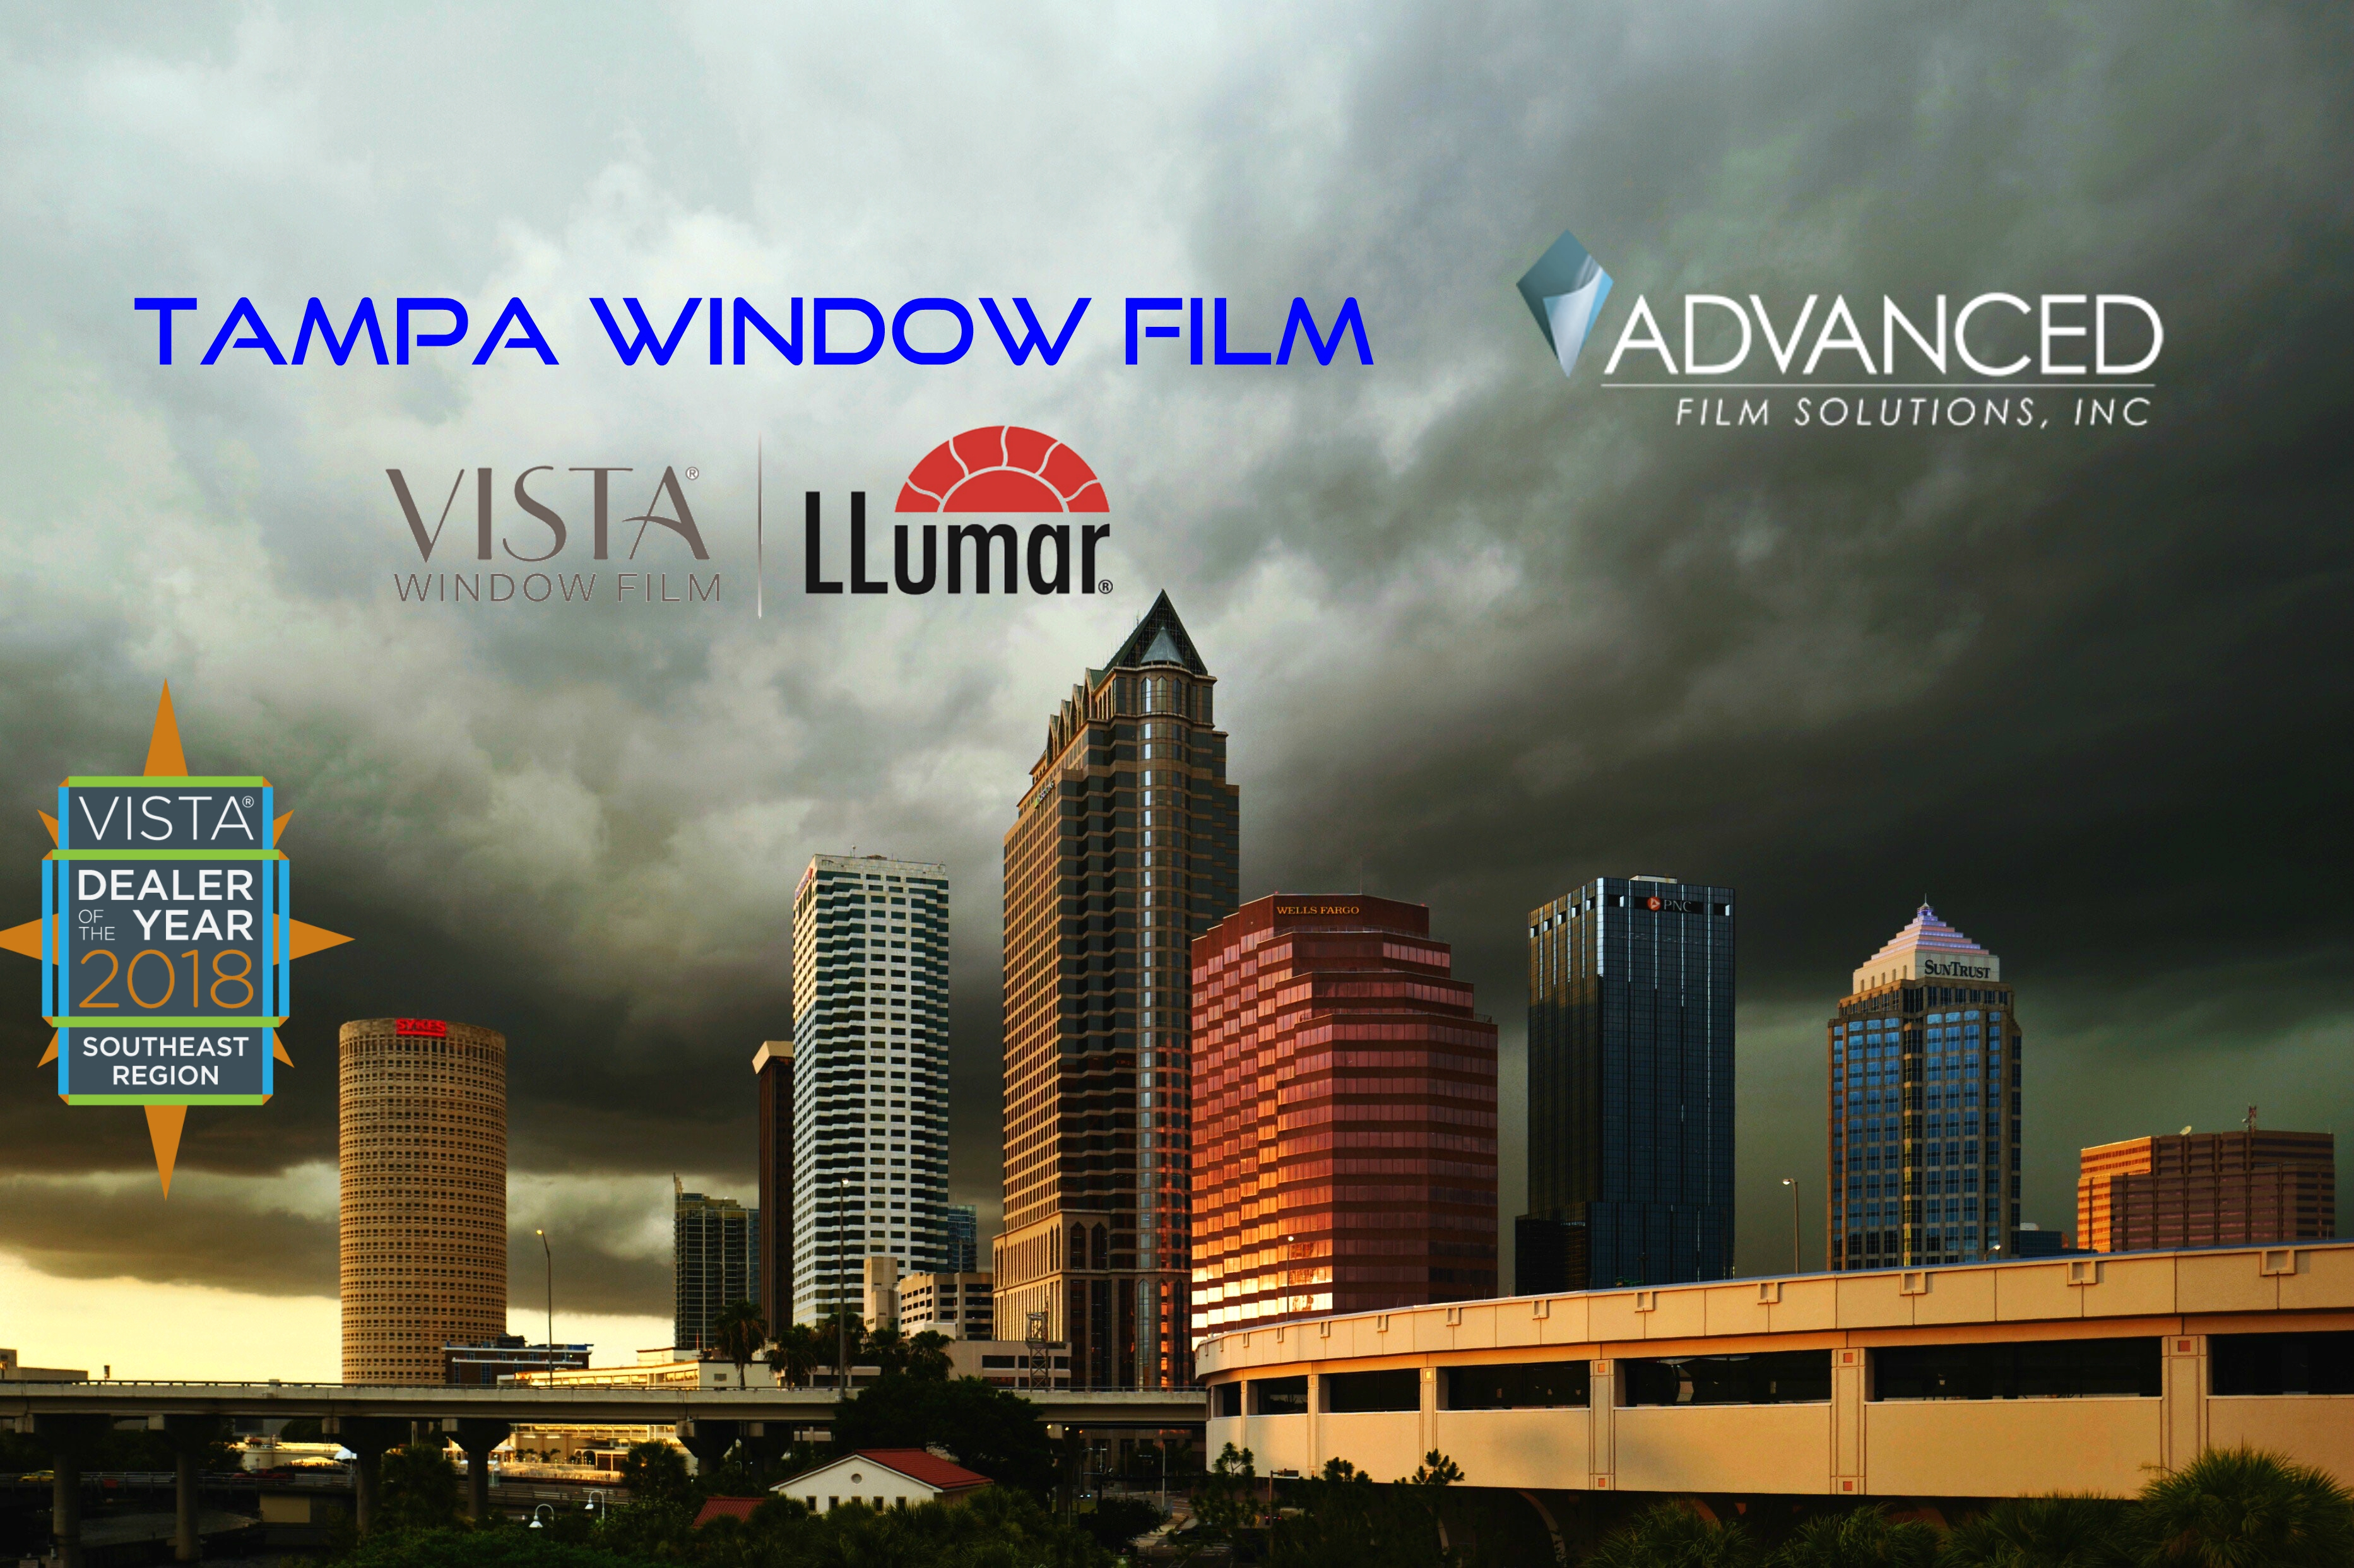 Make Your Tampa Home Cool This Summer With Advanced Film Solutions